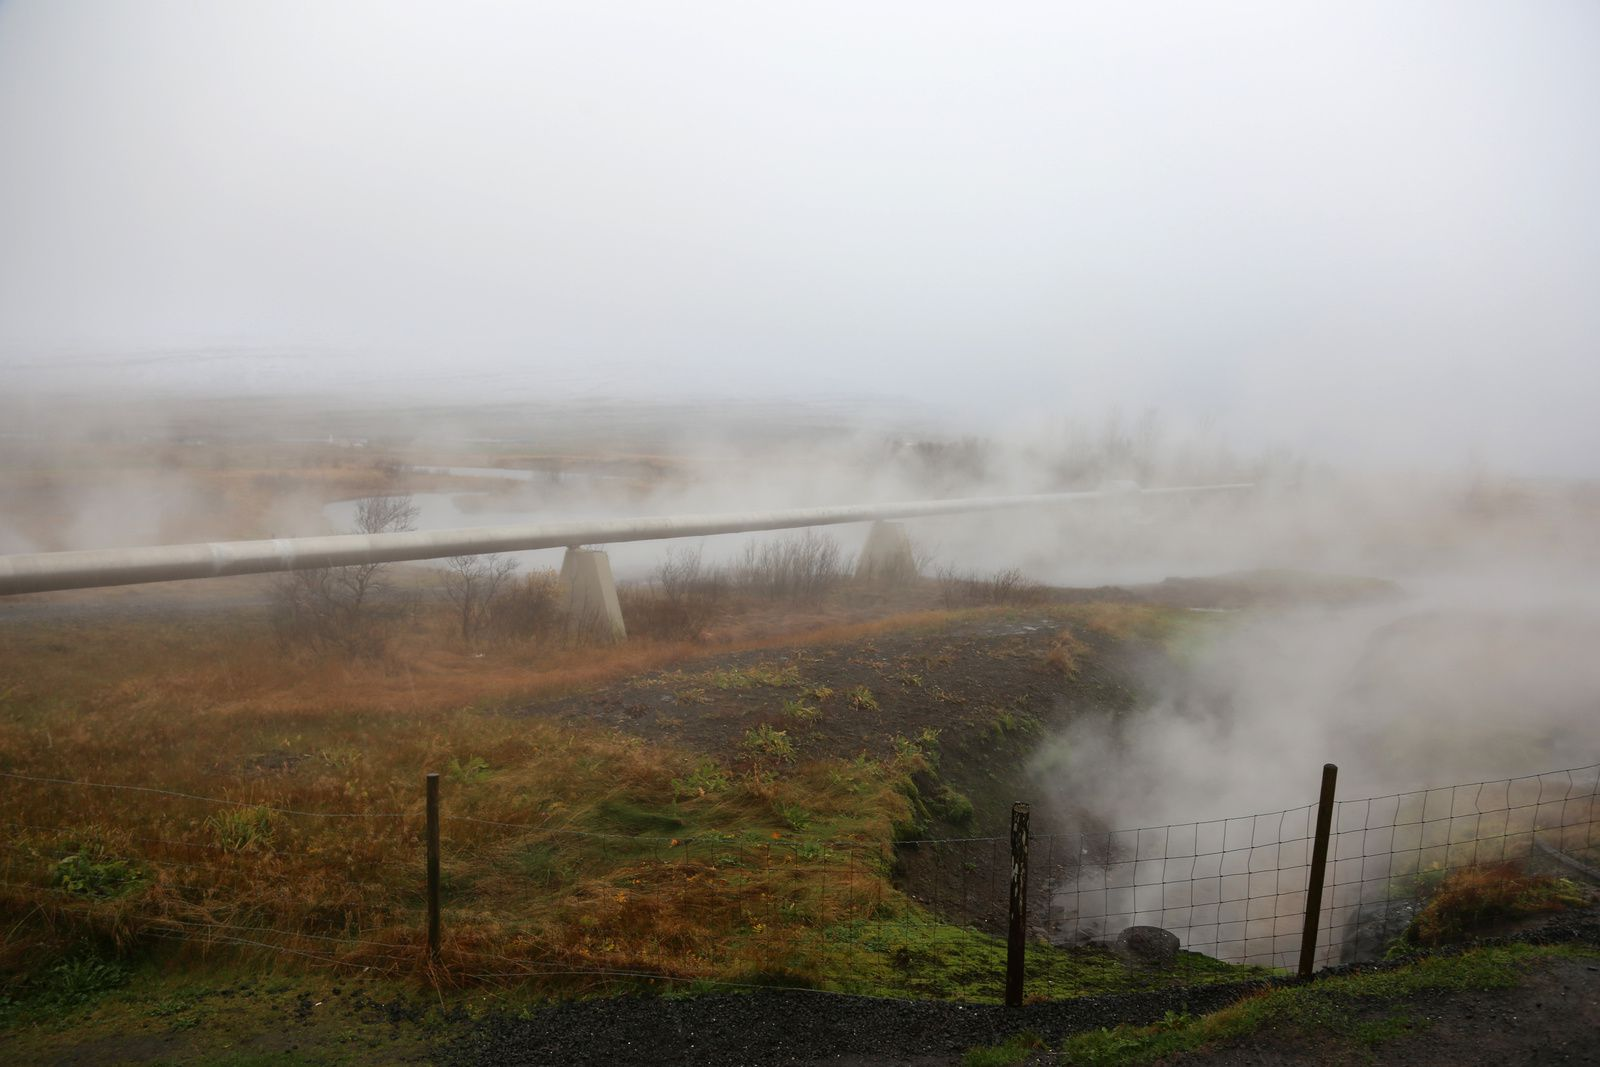 Deildartunguhver, the vapors of the geothermal exploitation are confused in the ambient winter fog - photo © Bernard Duyck 10.2016